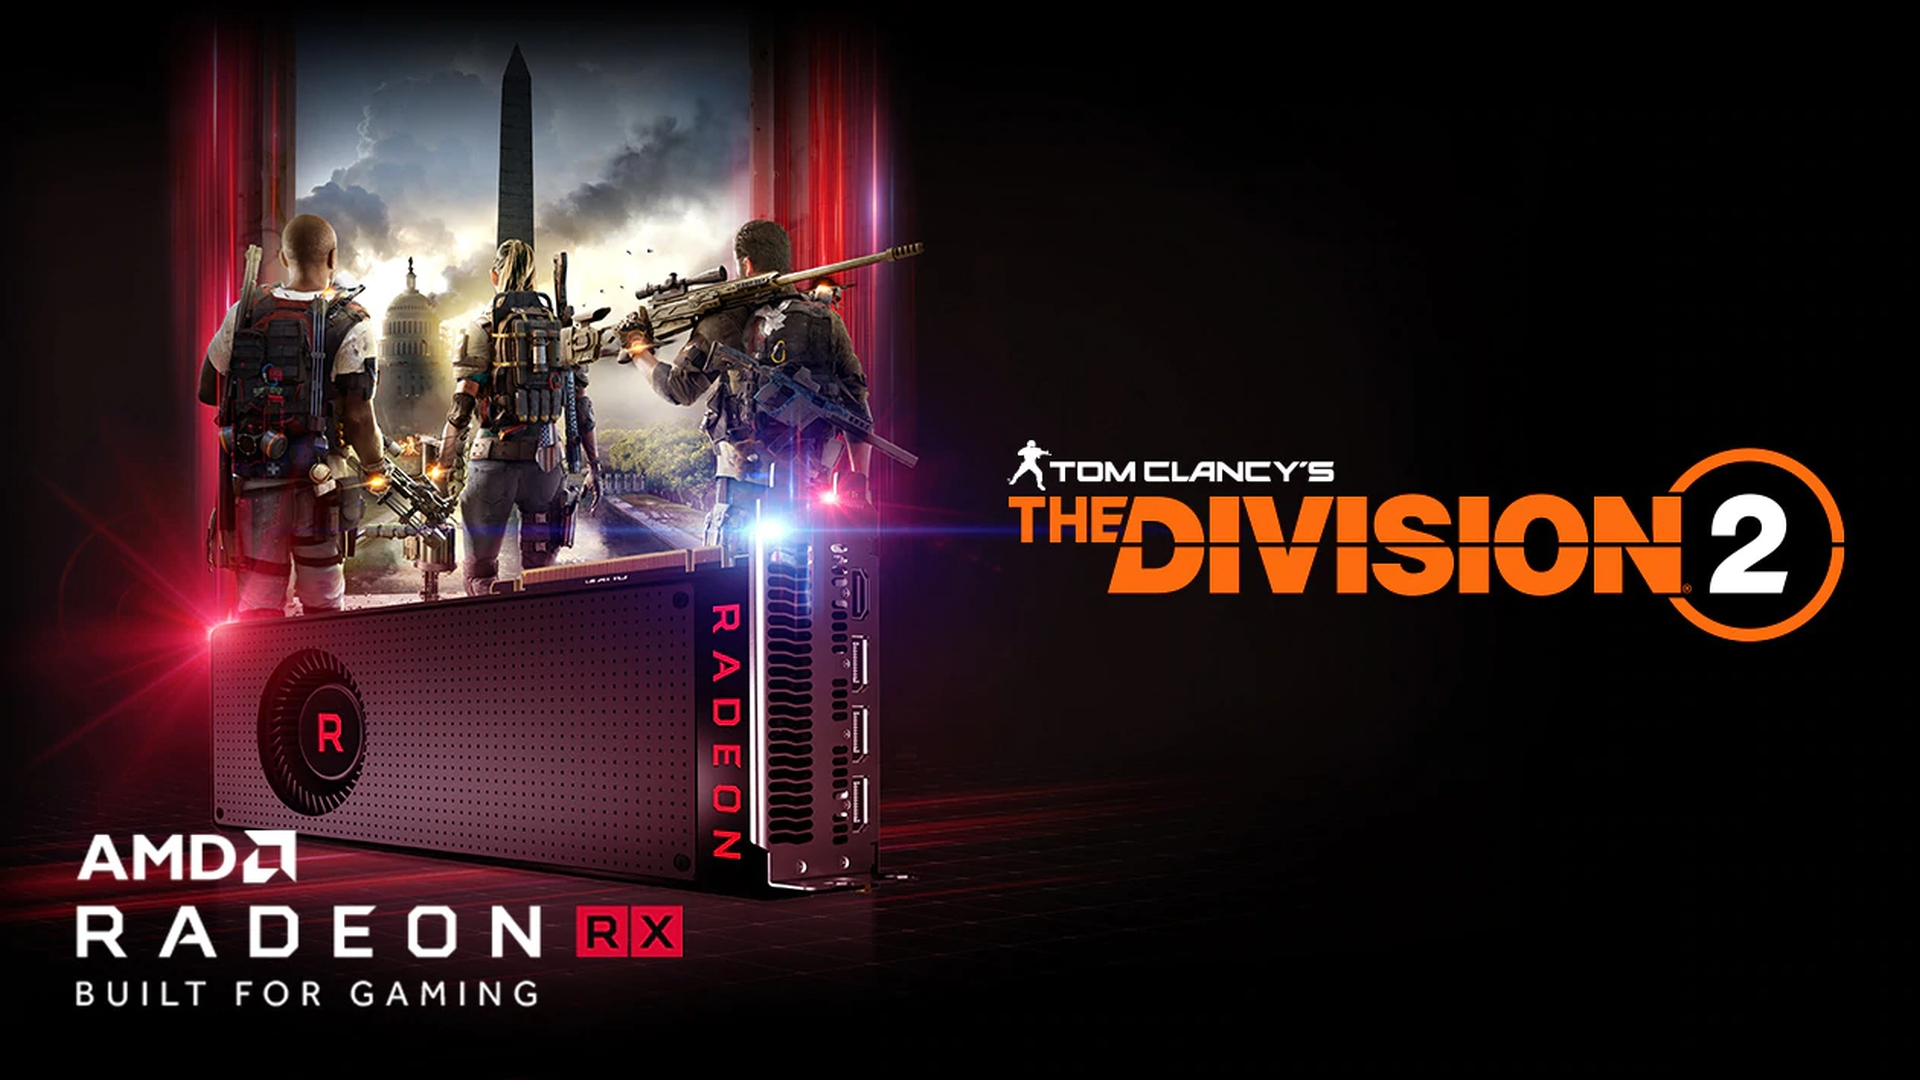 The Division 2 DX12 Performance Will Be Great Thanks to